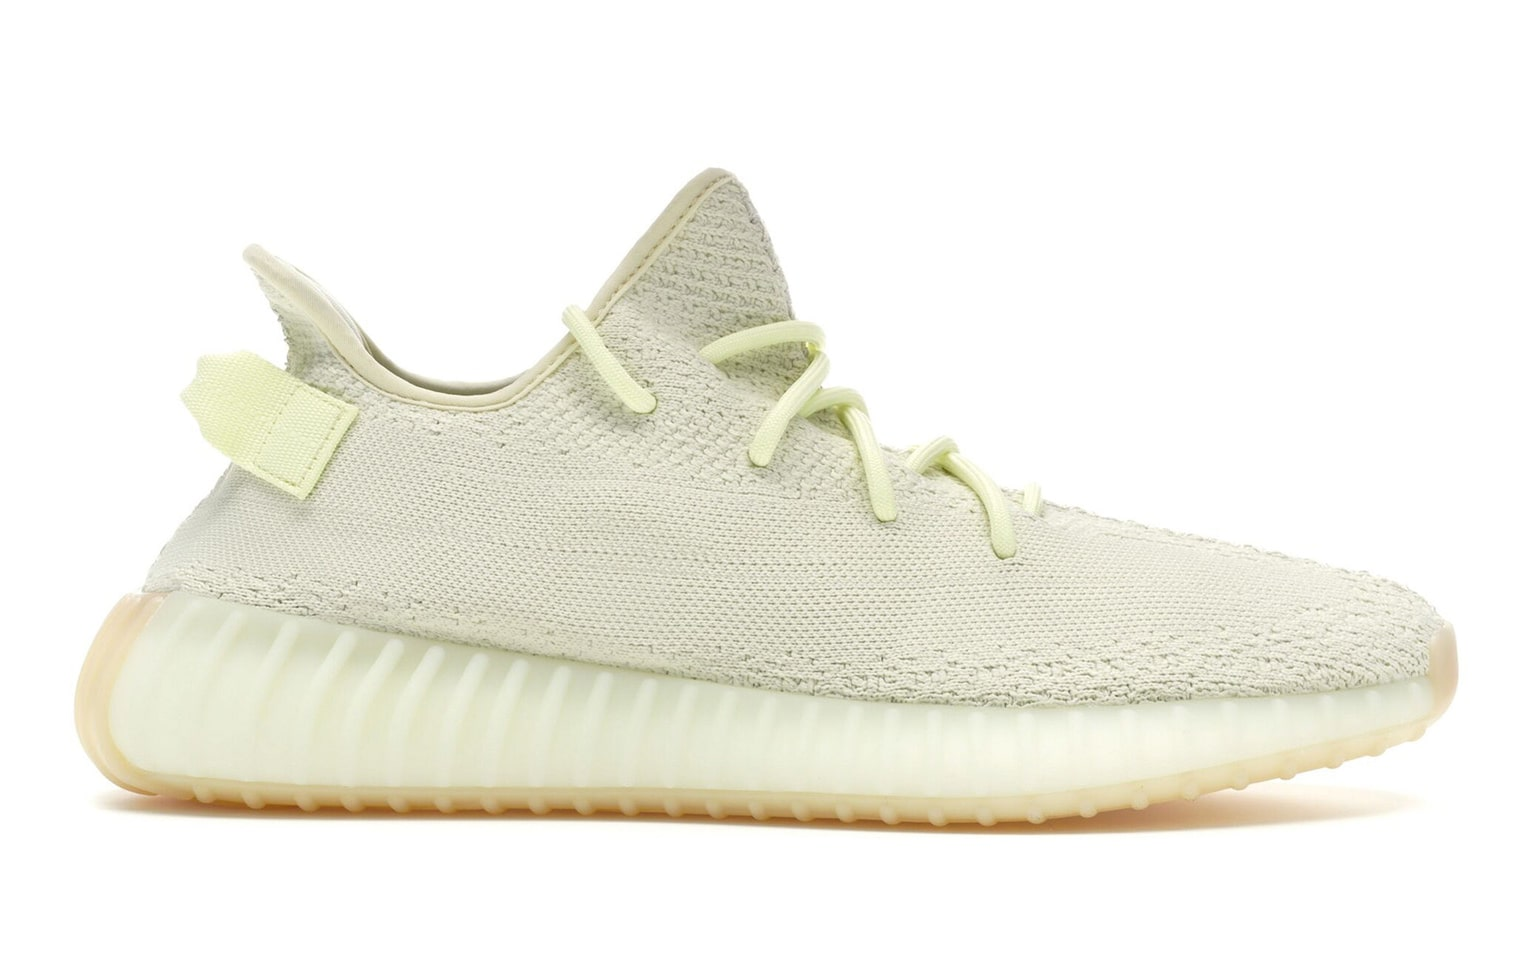 best website 235fa e316b Every YEEZY Release Heading Your Way in 2019 - HOUSE OF HEAT ...